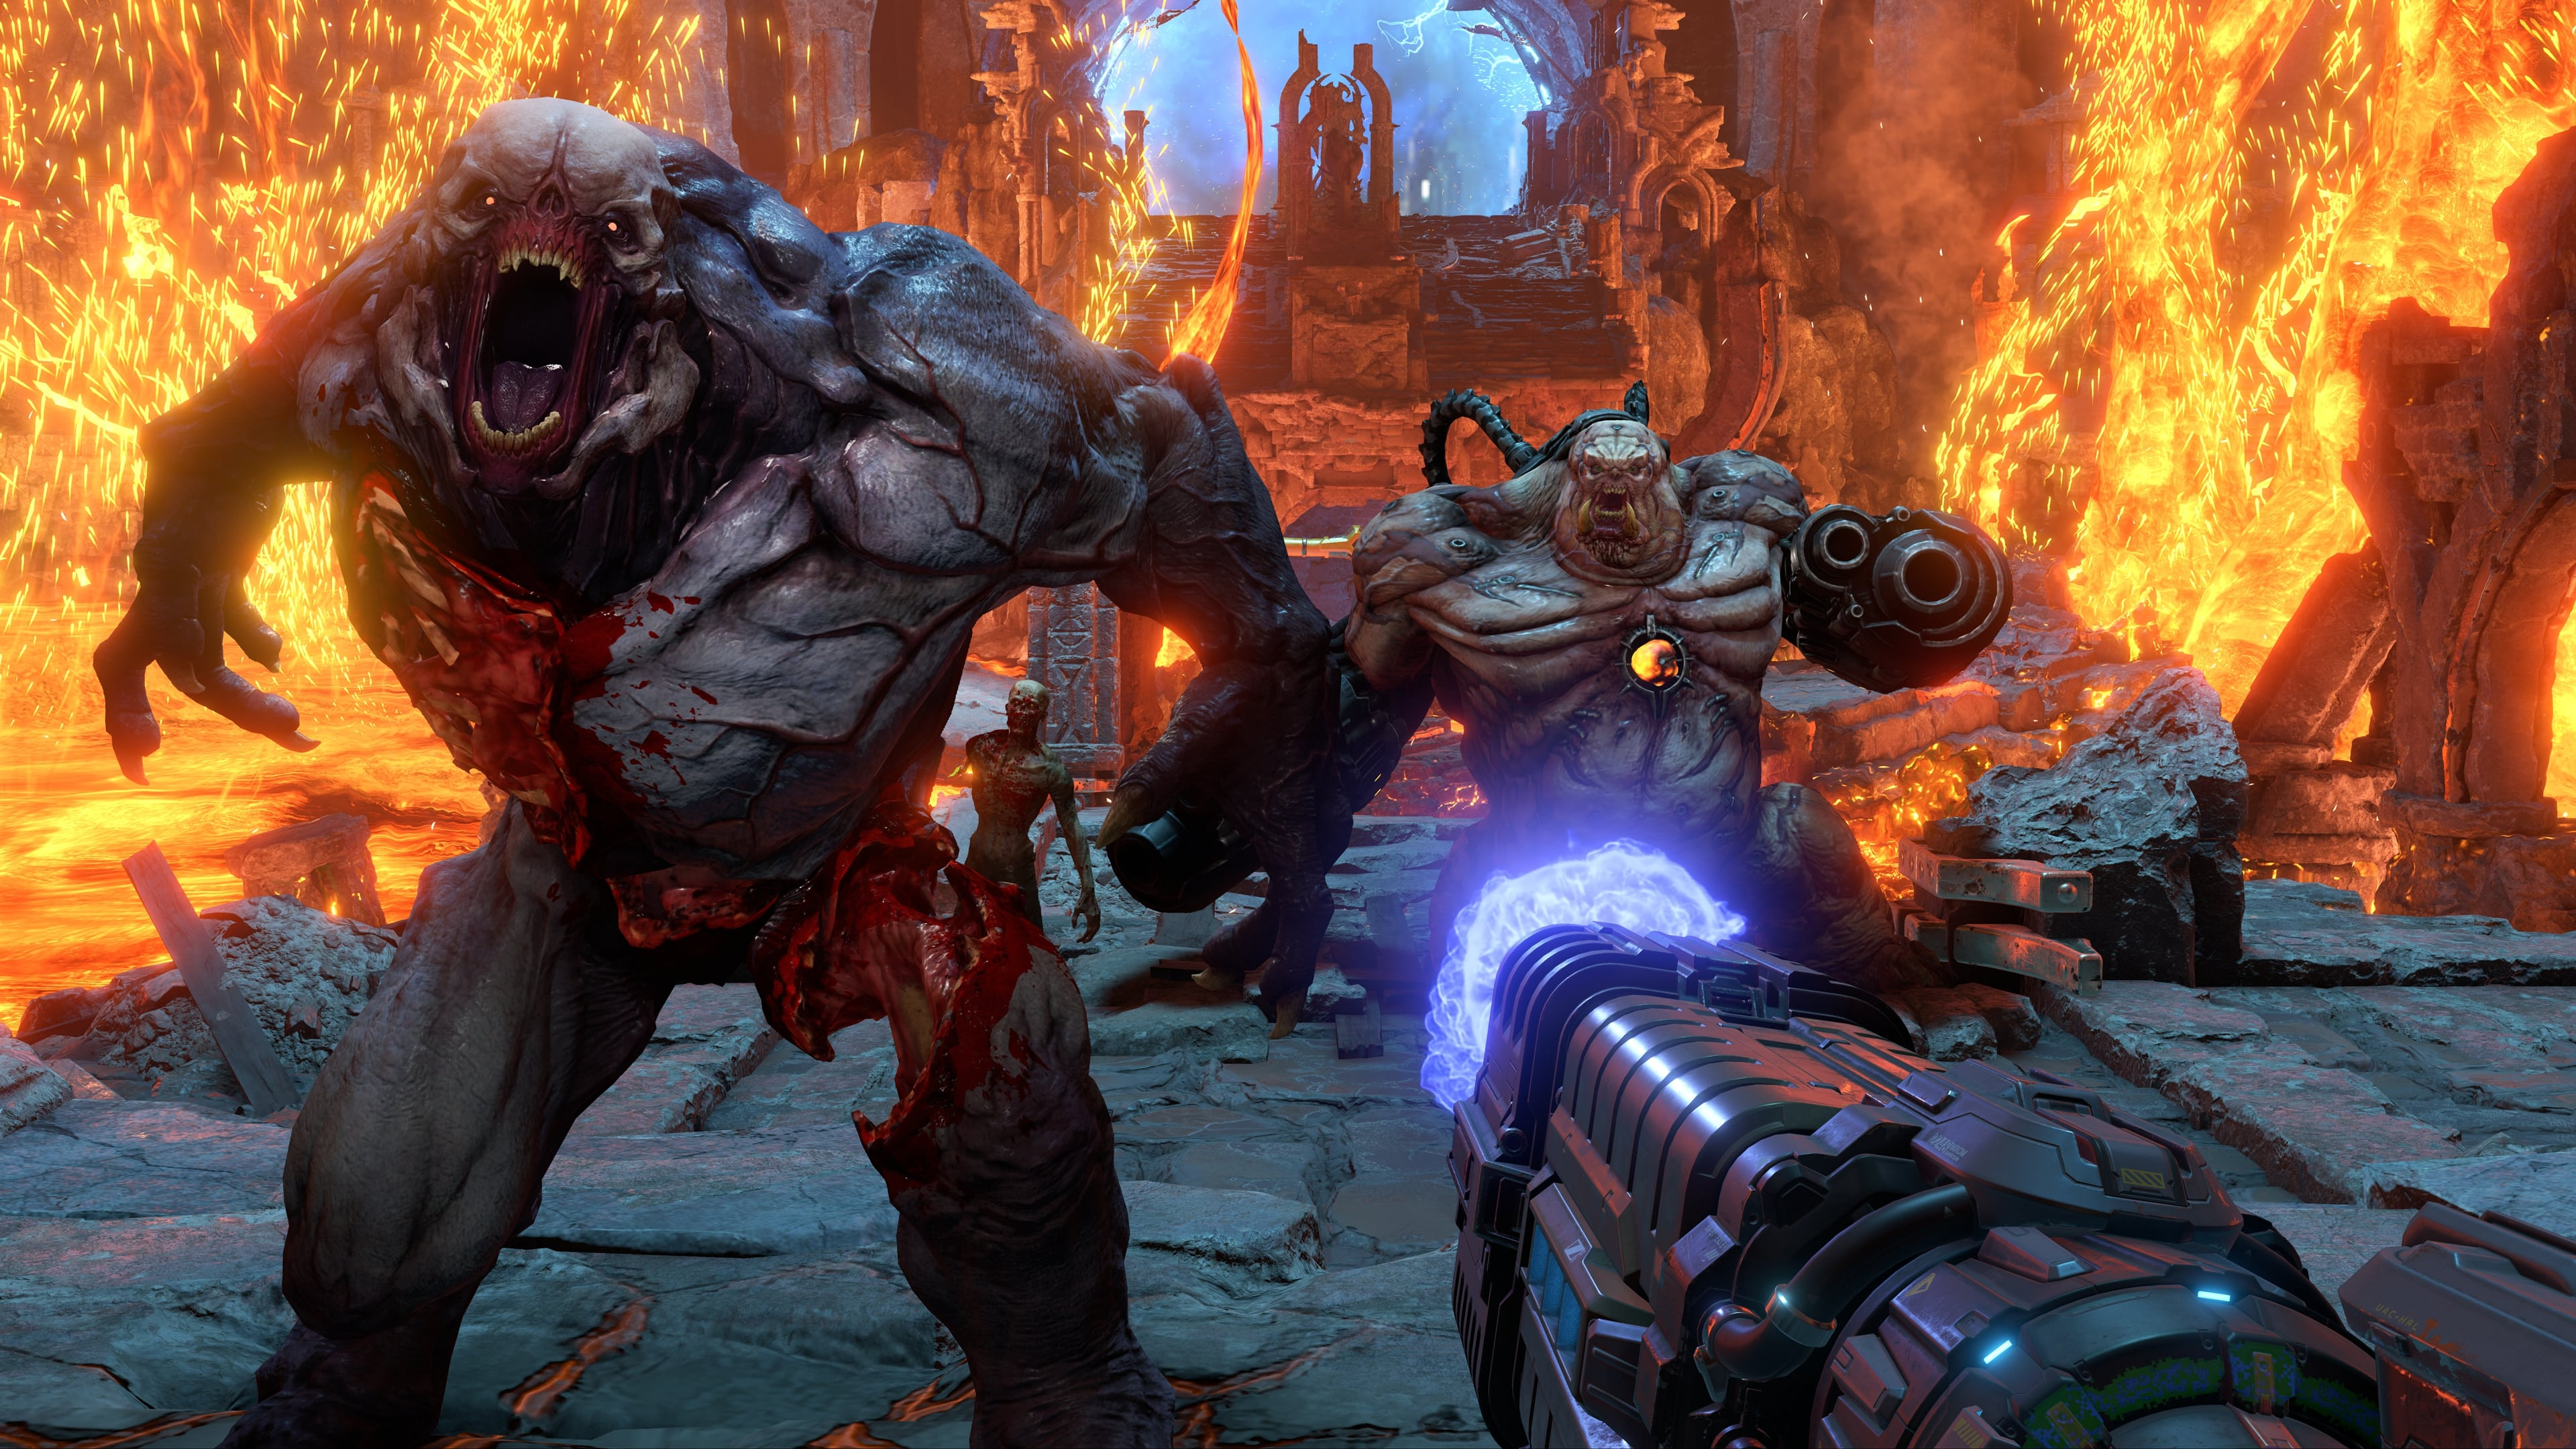 I Played Doom Eternal And Now All I Want To Do Is Play More Doom